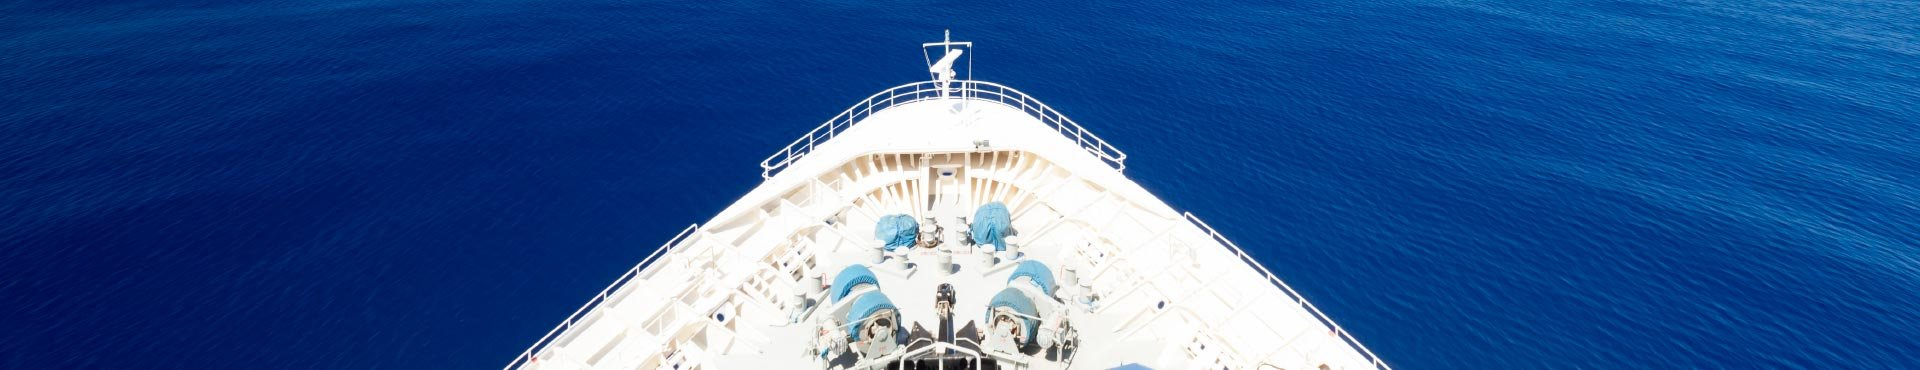 boating and maritime law header